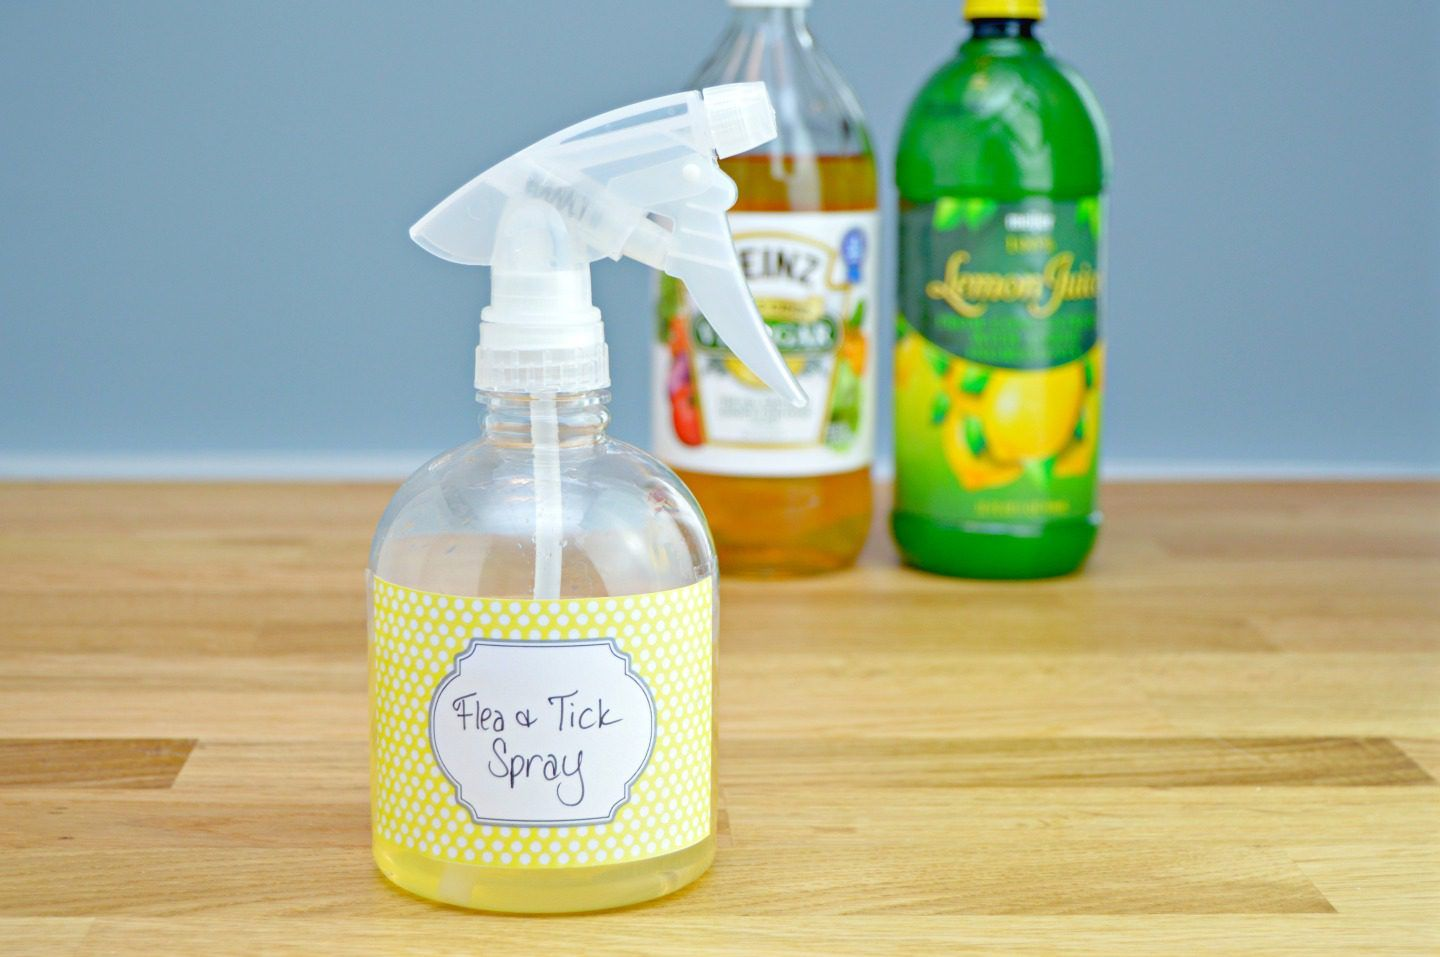 This Tutorial On How To Make A Homemade Flea And Tick Repellent Is So Simple And Will Leave You Flea And Tick Spray Flea Spray For Cats Homemade Tick Repellent